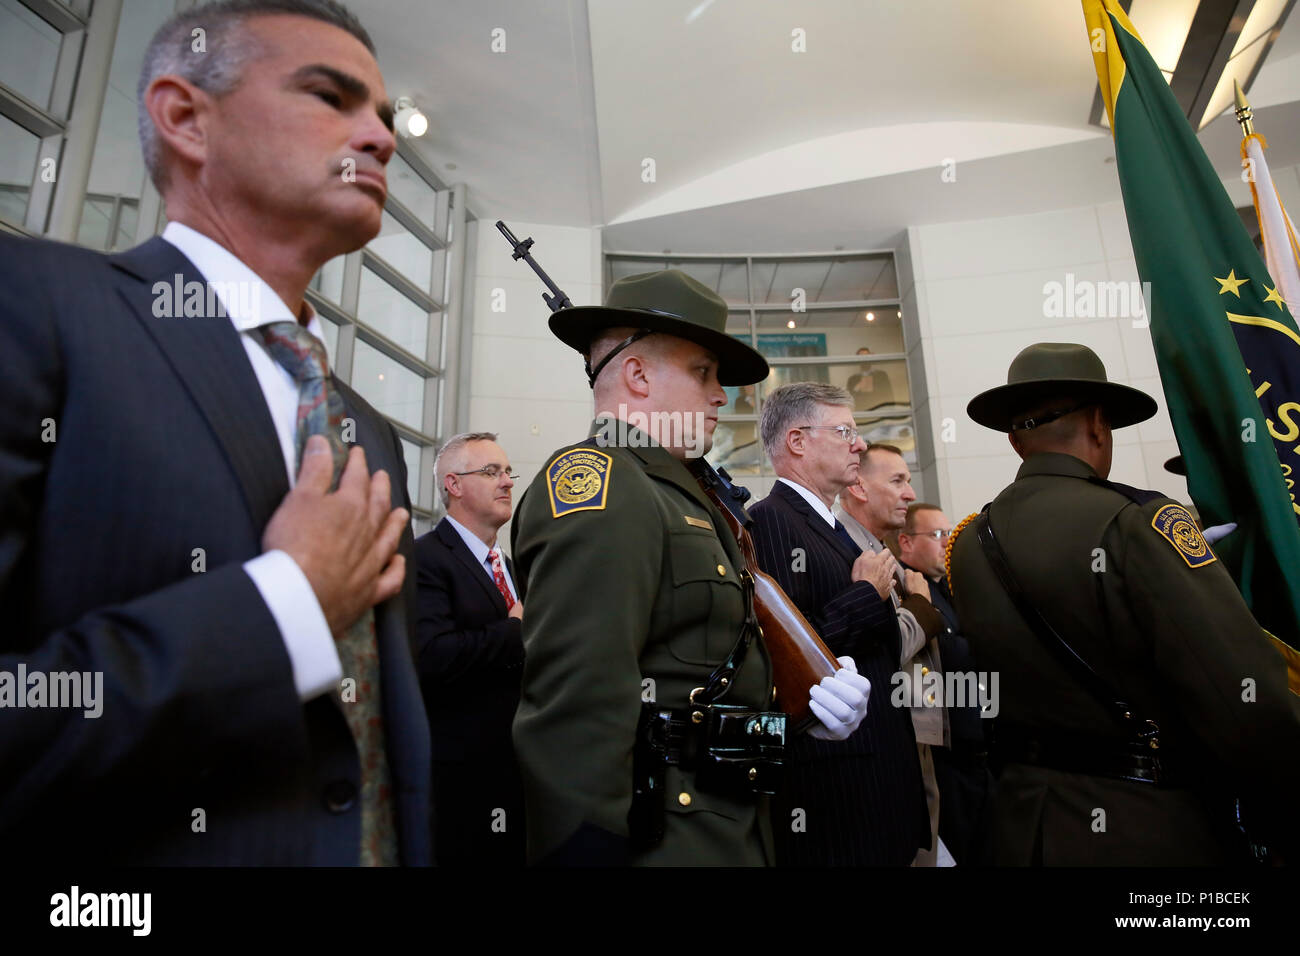 Members of the U.S. Patrol color guard enter the hall shortly before U.S. Customs and Border Protection Commissioner R. Gil Kerlikowske swears-in newly appointed Chief of U.S. Border Patrol Mark Morgan during a ceremony at the Ronald Reagan Building in Washington, D.C., October 11, 2016. CBP Photo by Glenn Fawcett - Stock Image